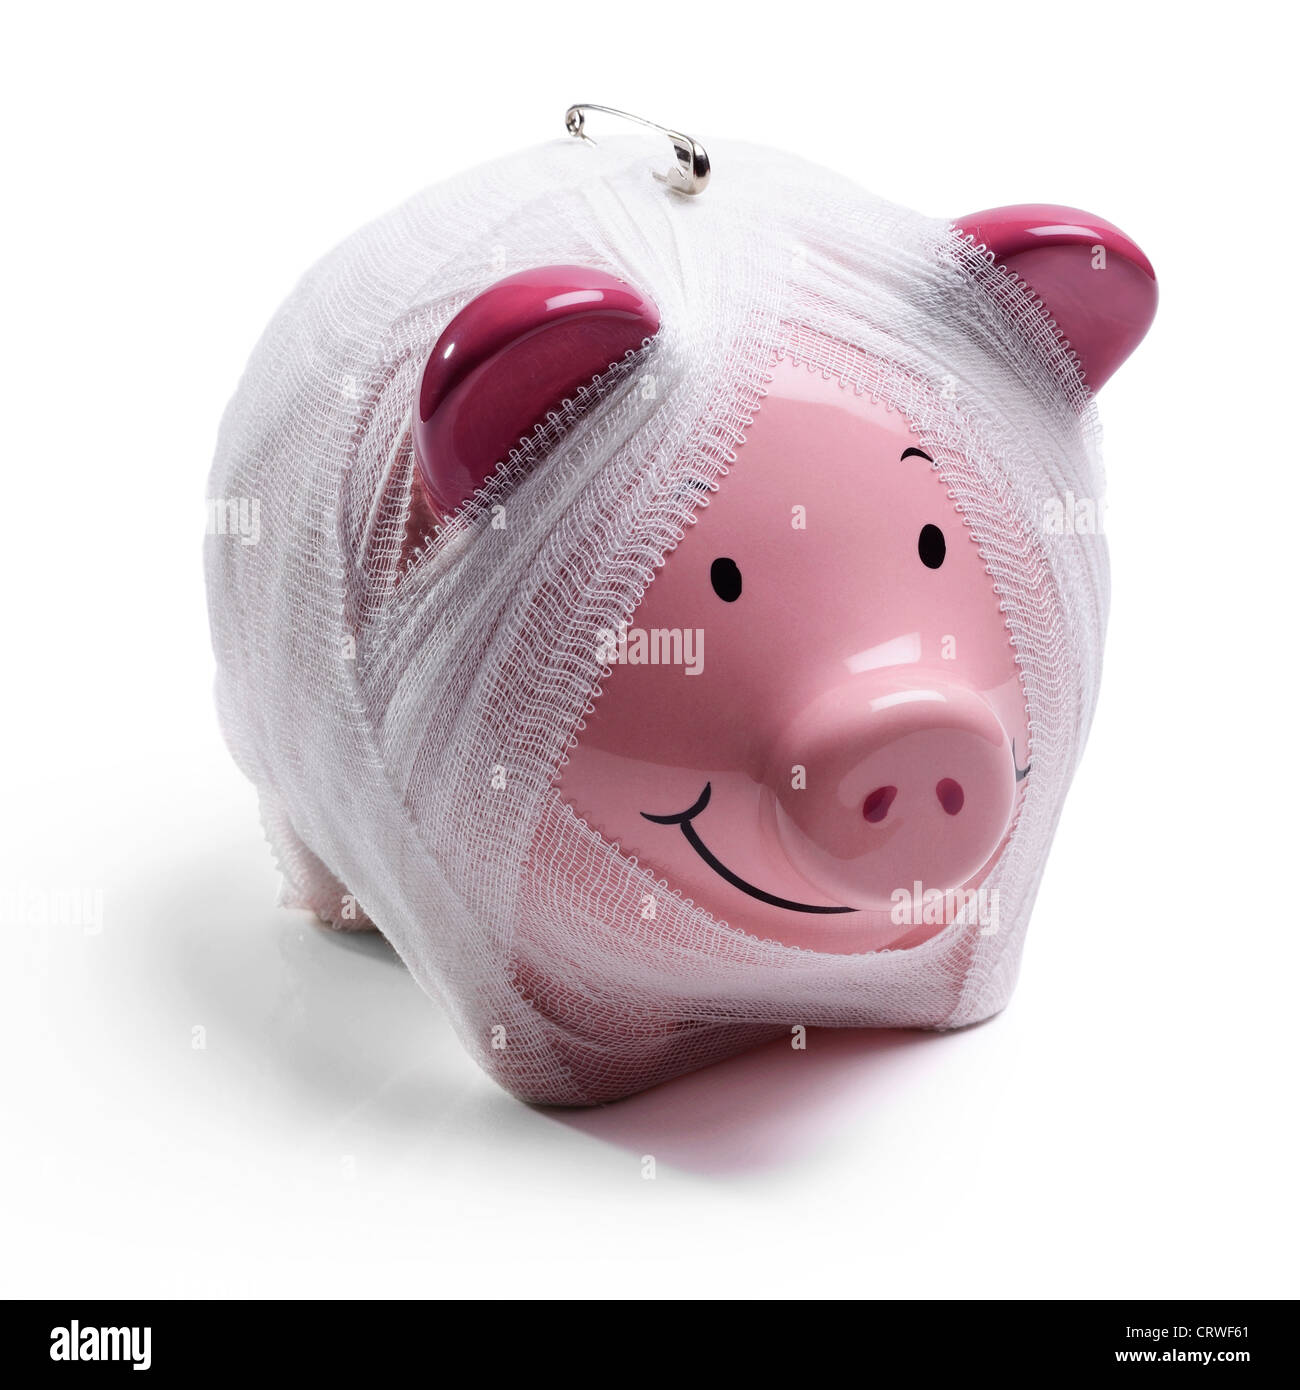 Concept Pink piggy bank Photo Stock